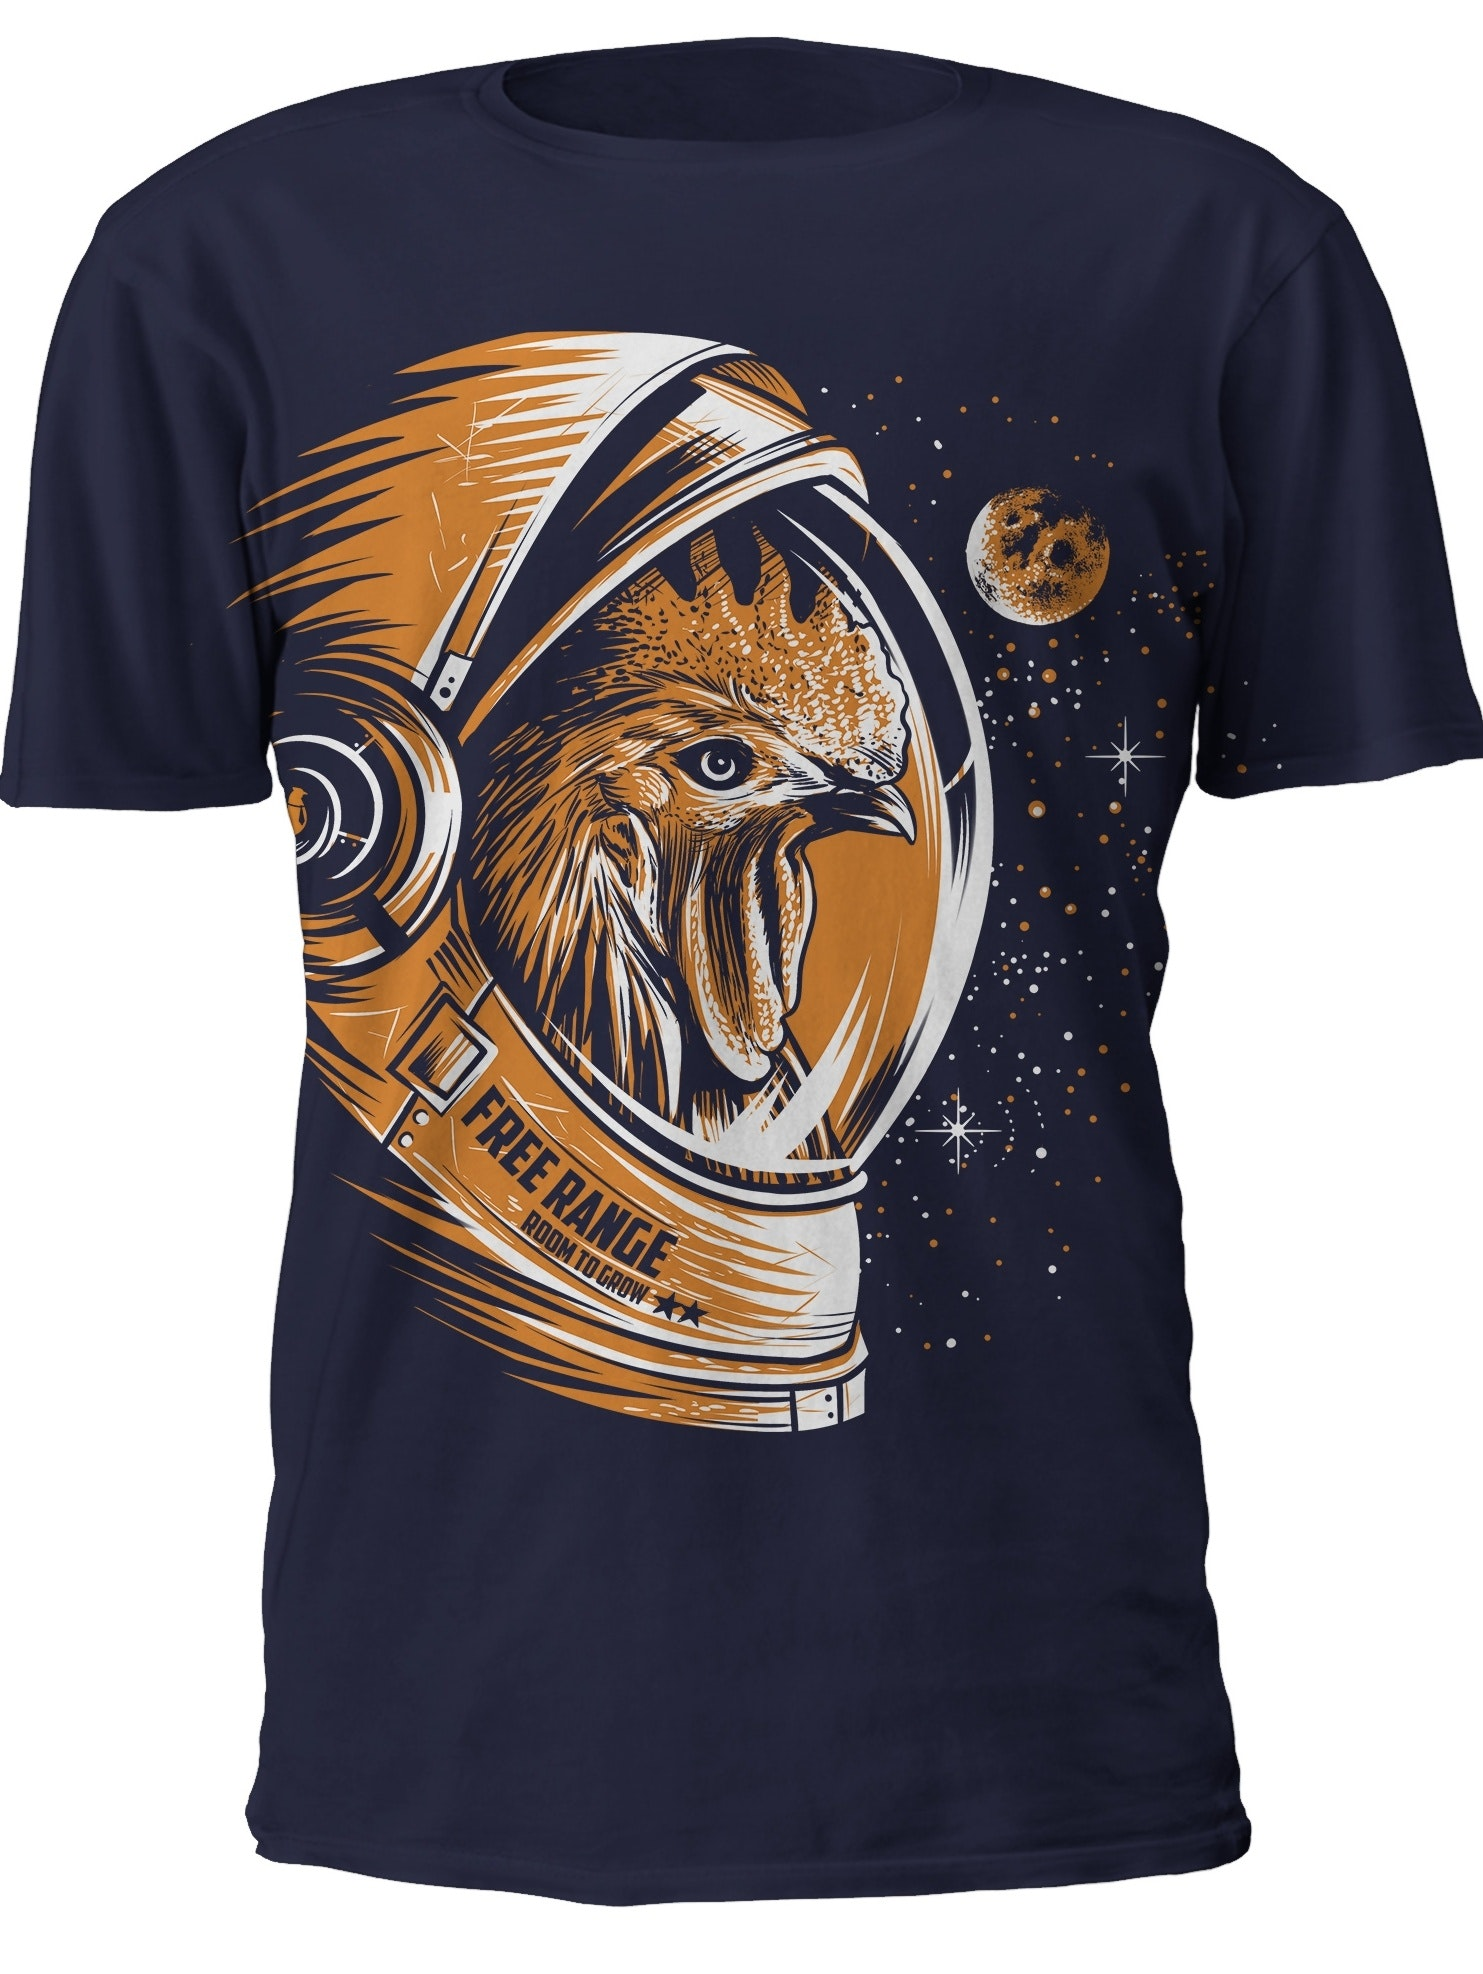 Illustrated chicken astronaut t-shirt